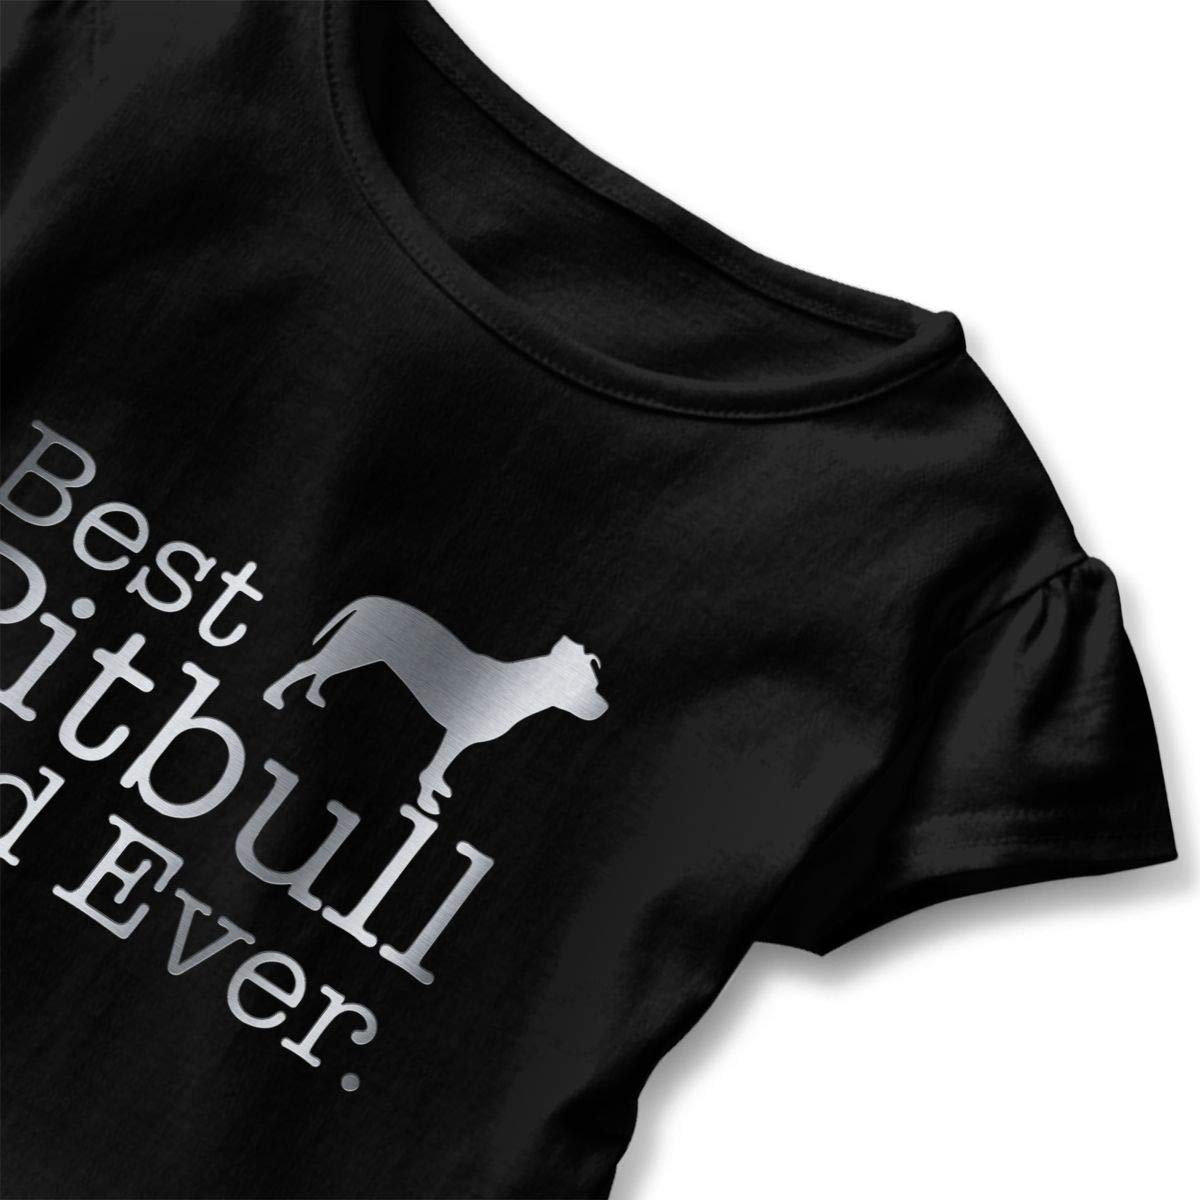 CZnuen Best Pitbull Dad Ever 2-6T Baby Girls Cotton Jersey Short Sleeve Ruffle Tee